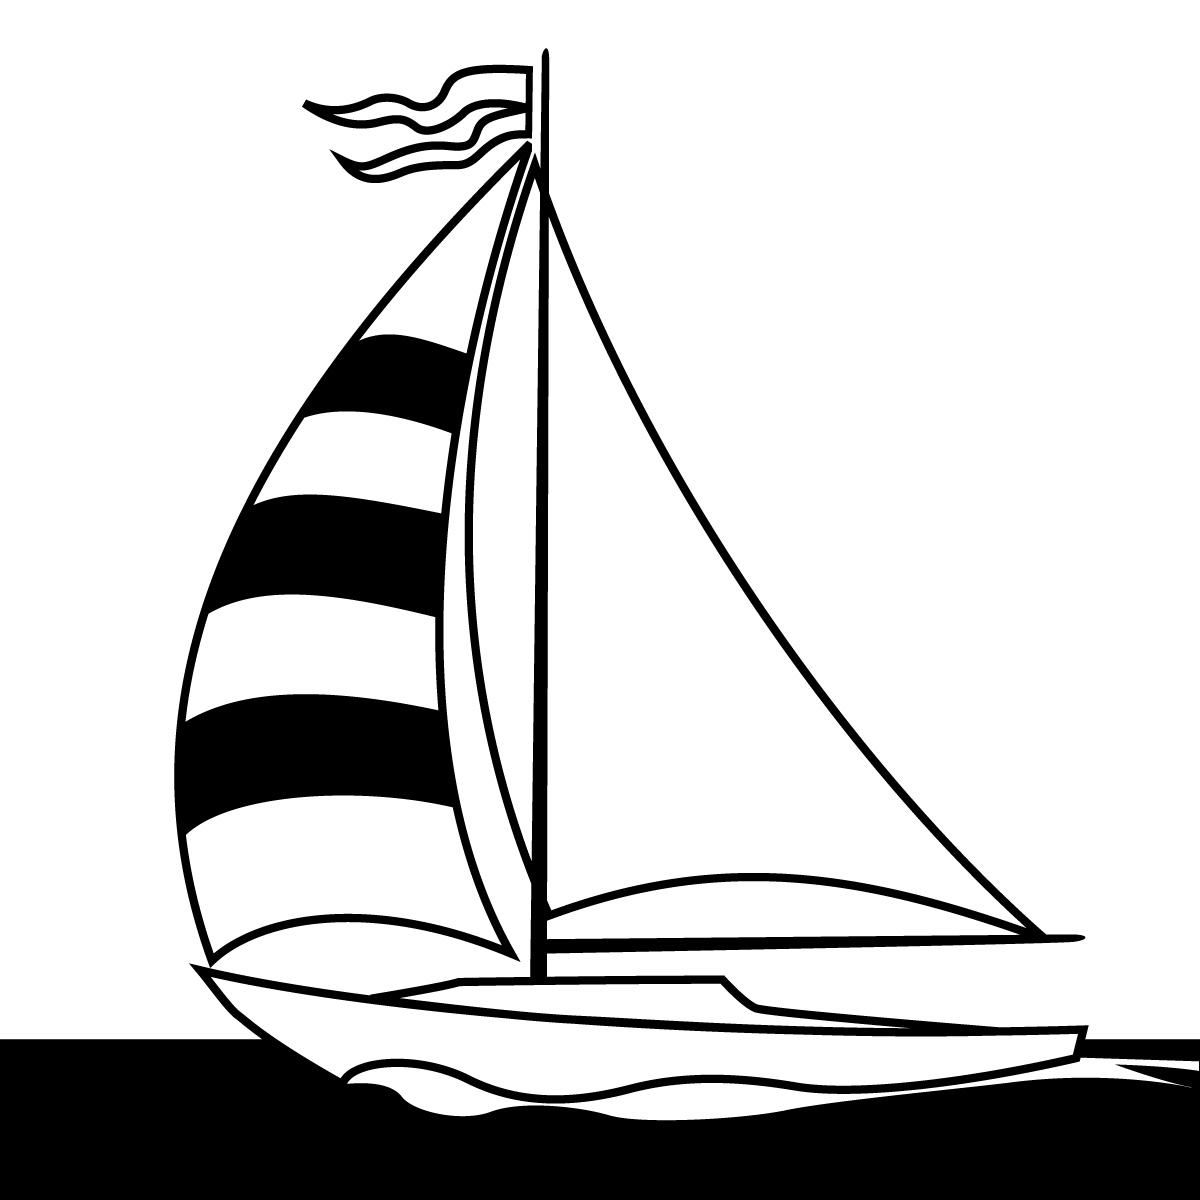 1200x1200 Sailboat Clipart, Suggestions For Sailboat Clipart, Download